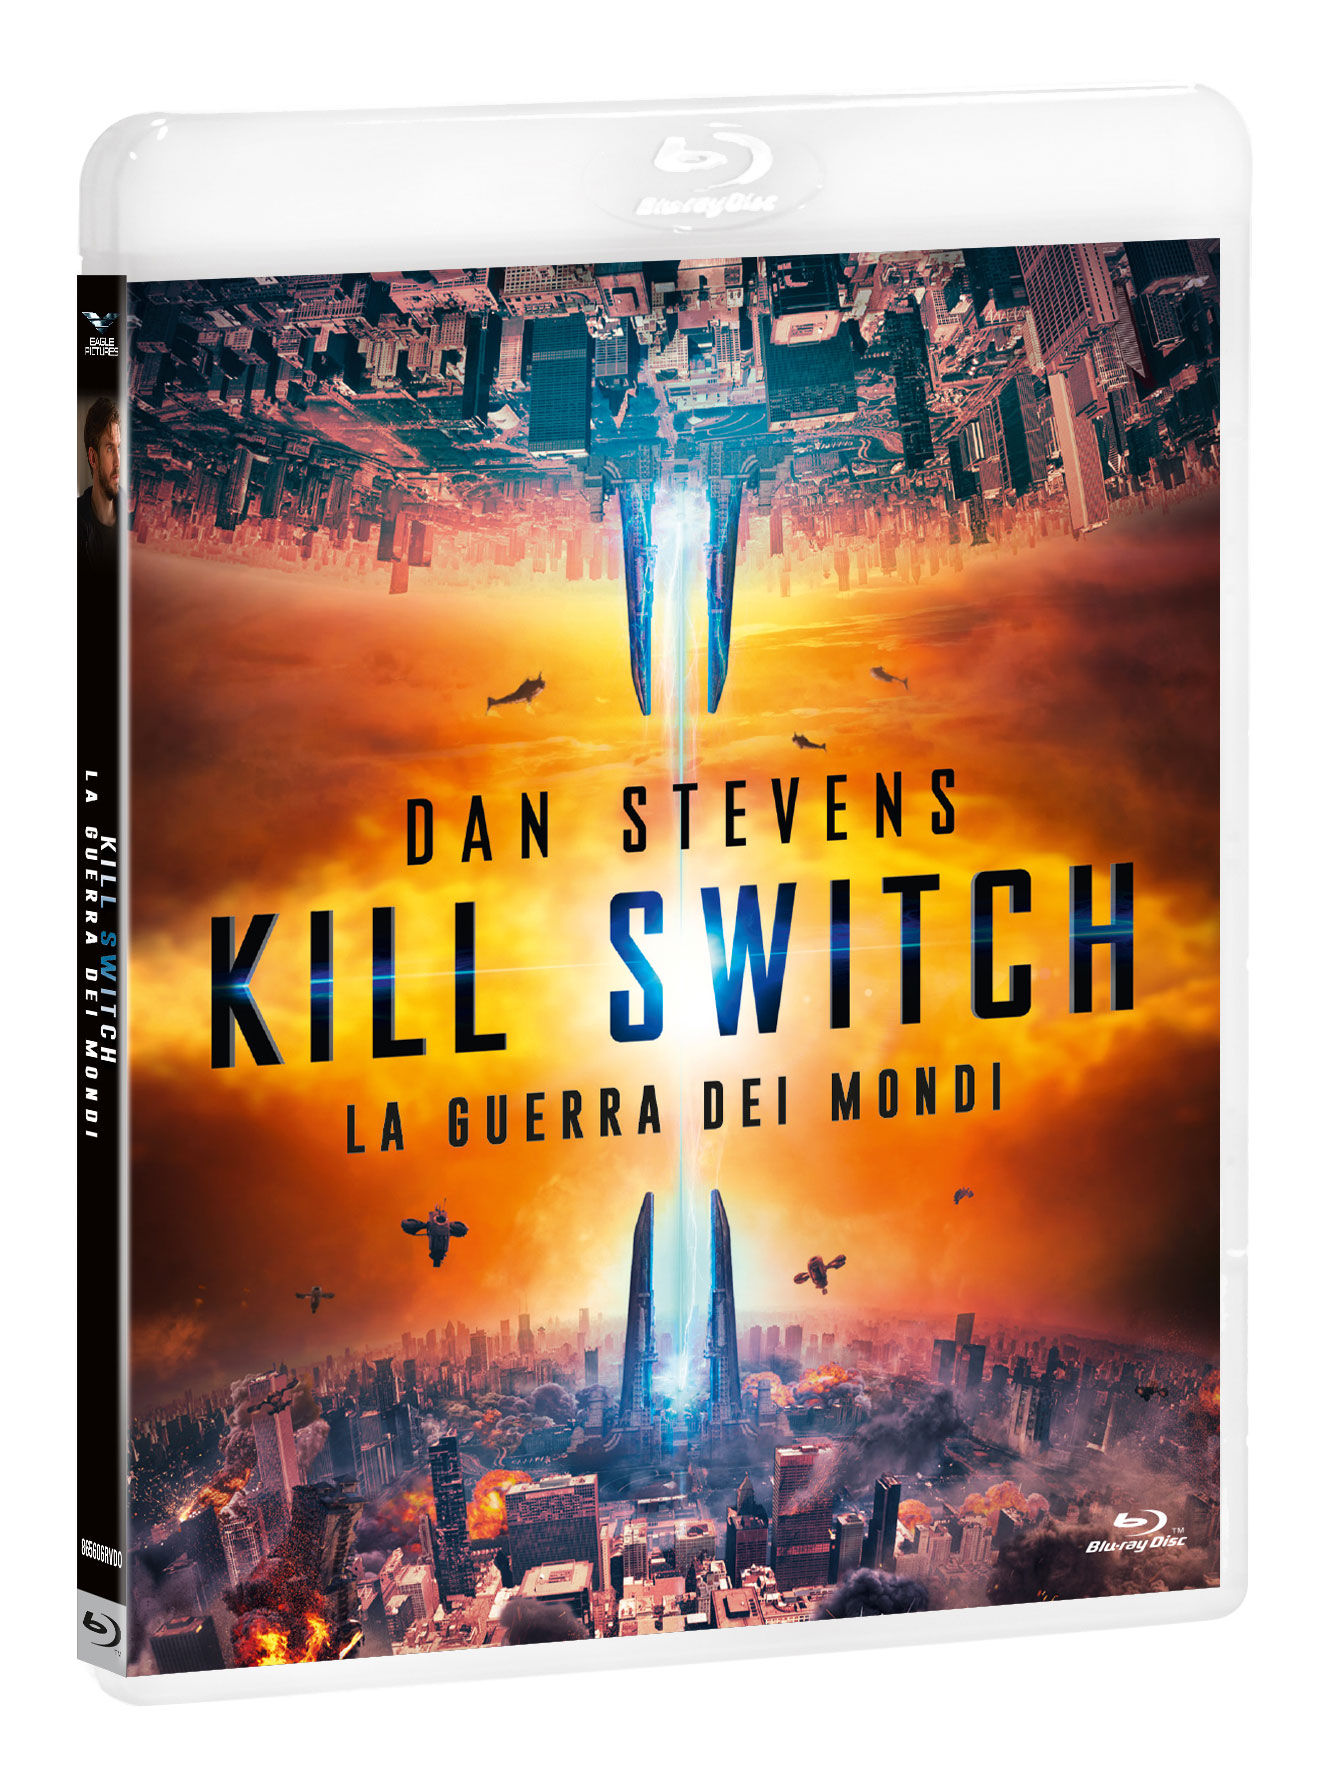 KILL SWITCH - LA GUERRA DEI MONDI (SCI-FI PROJECT) - BLU RAY